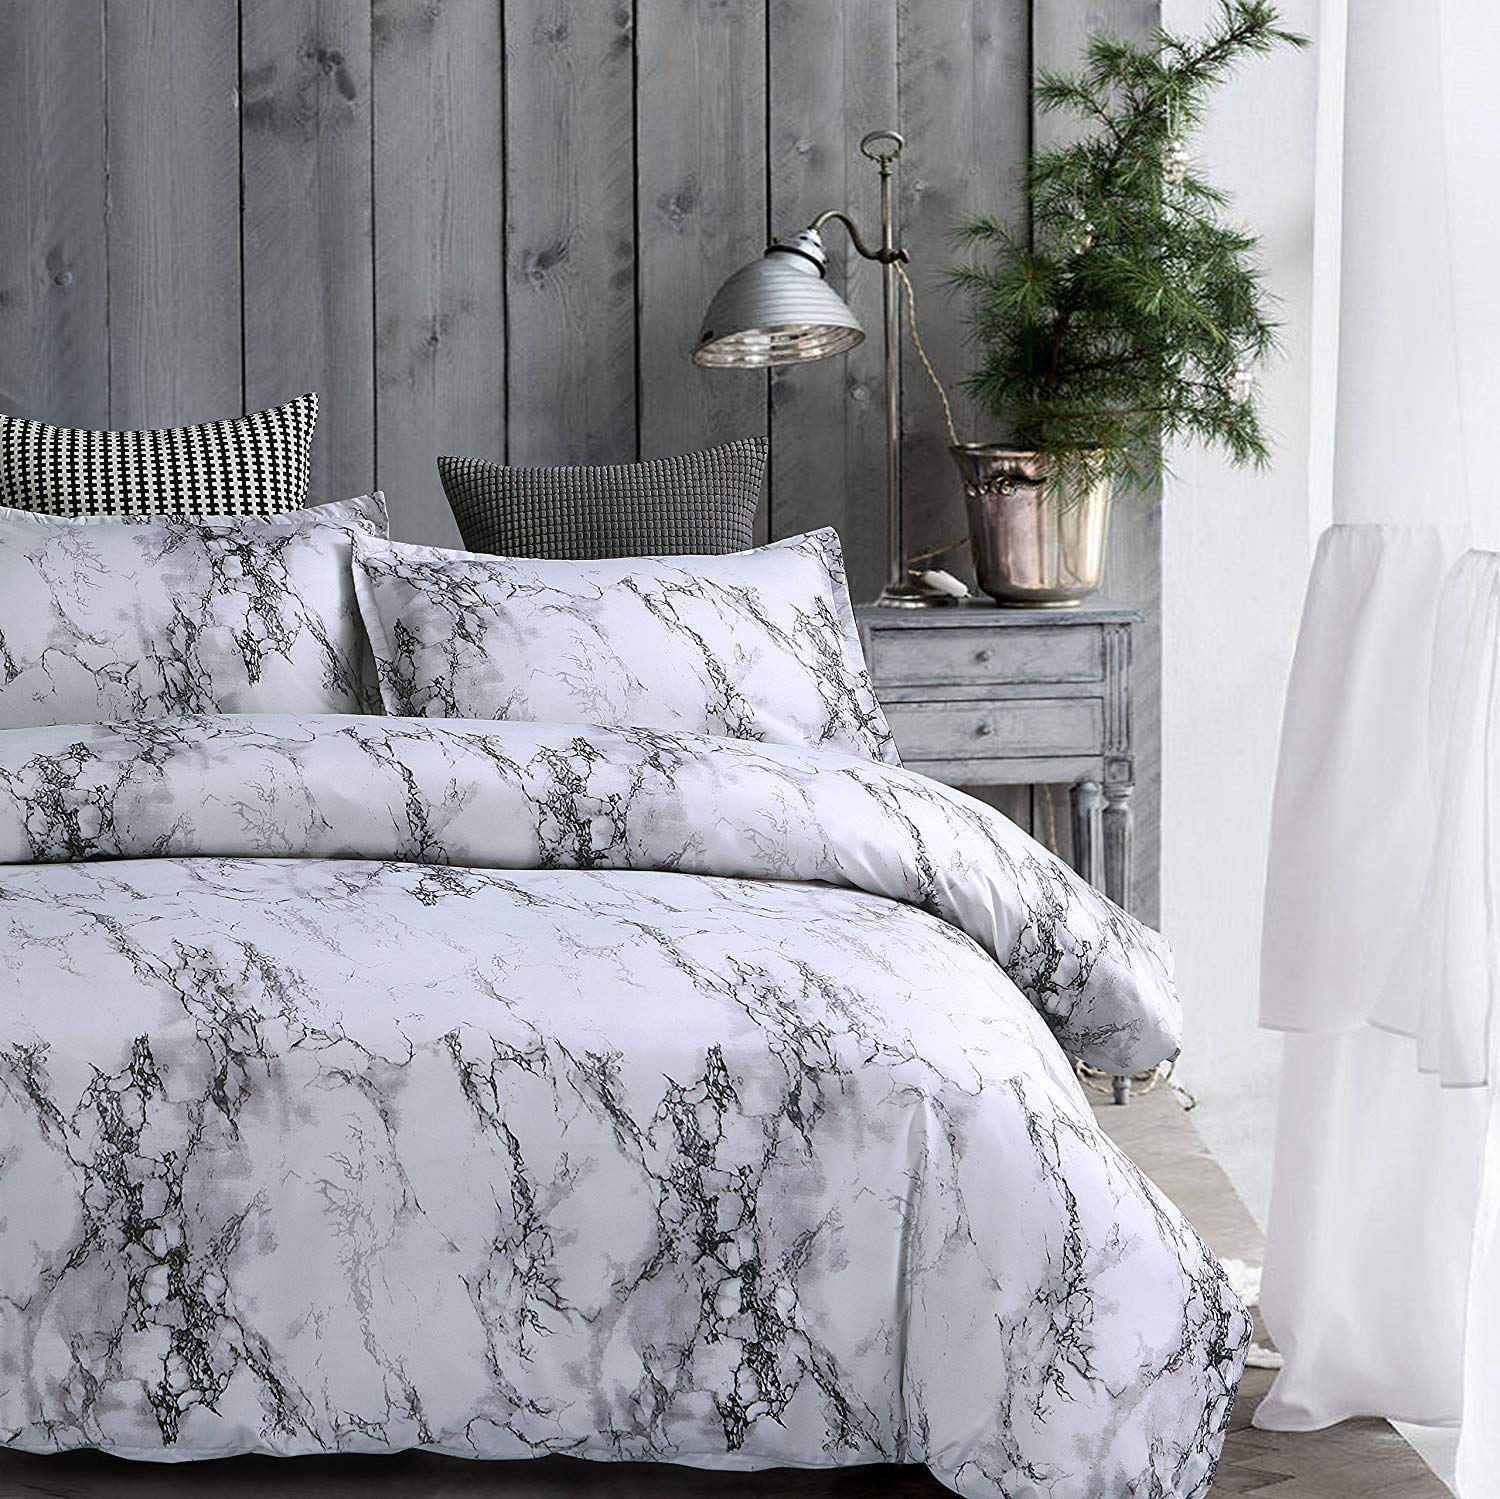 Amor Amp Amore White Marble Comforter Gray Grey And White